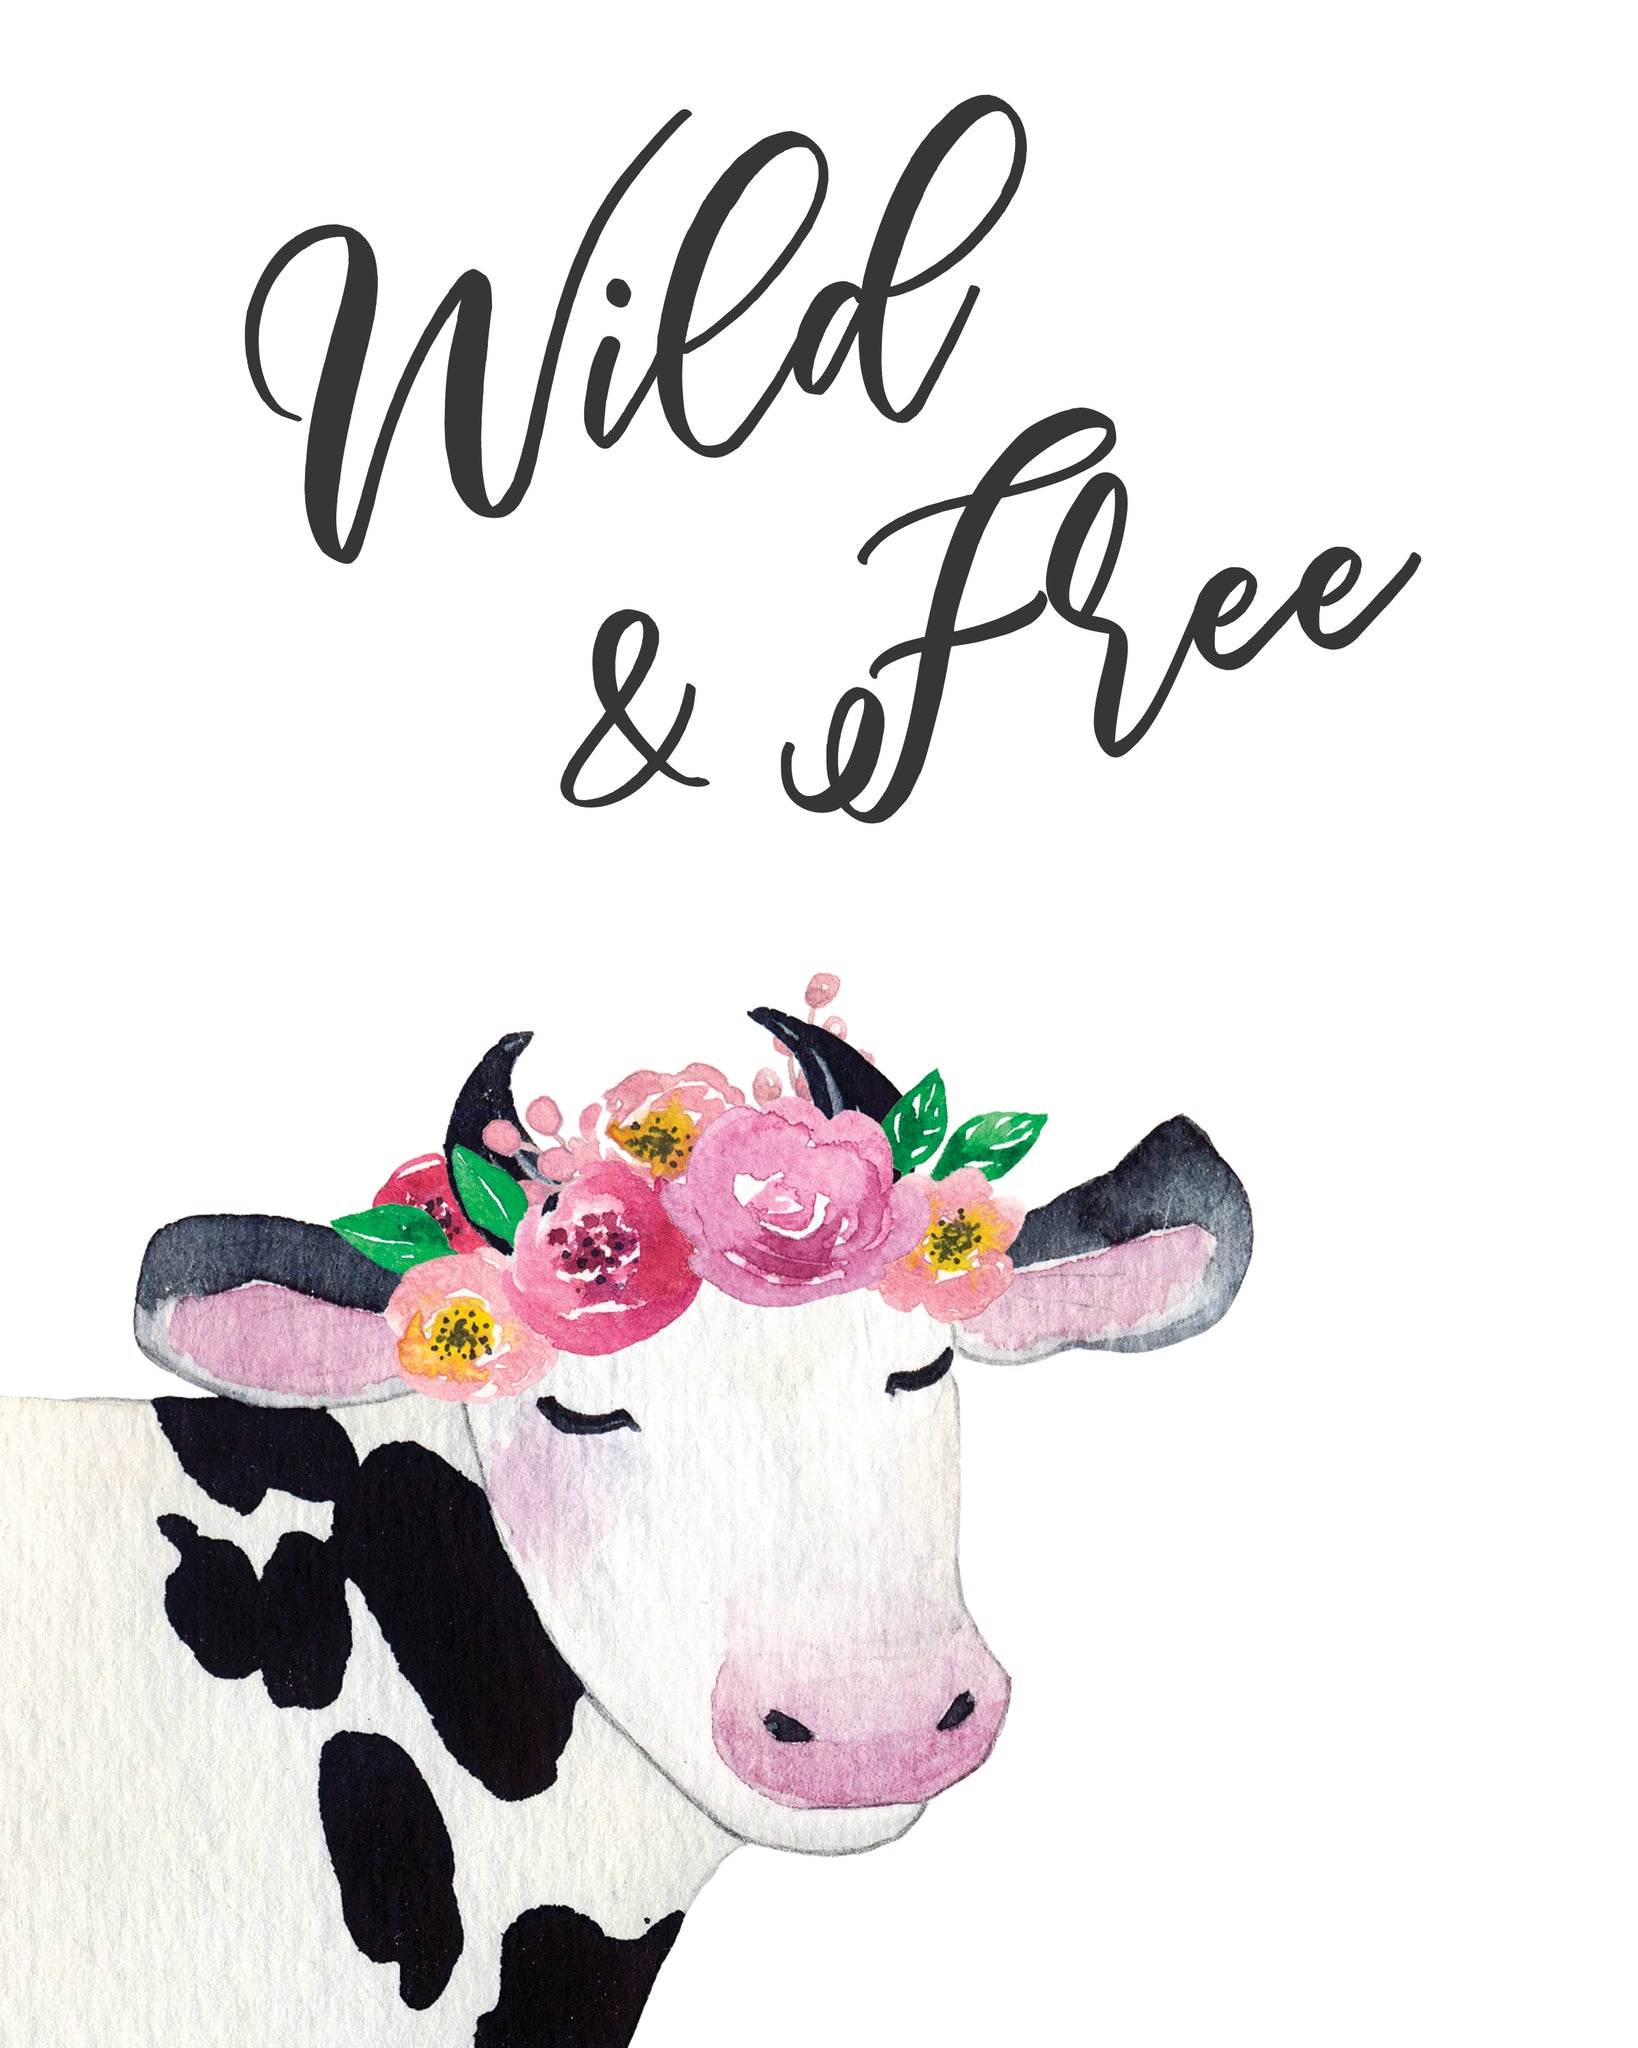 Bohemian Farm Animal Nursery 8x10 Wall Art, 3 Prints - Printable